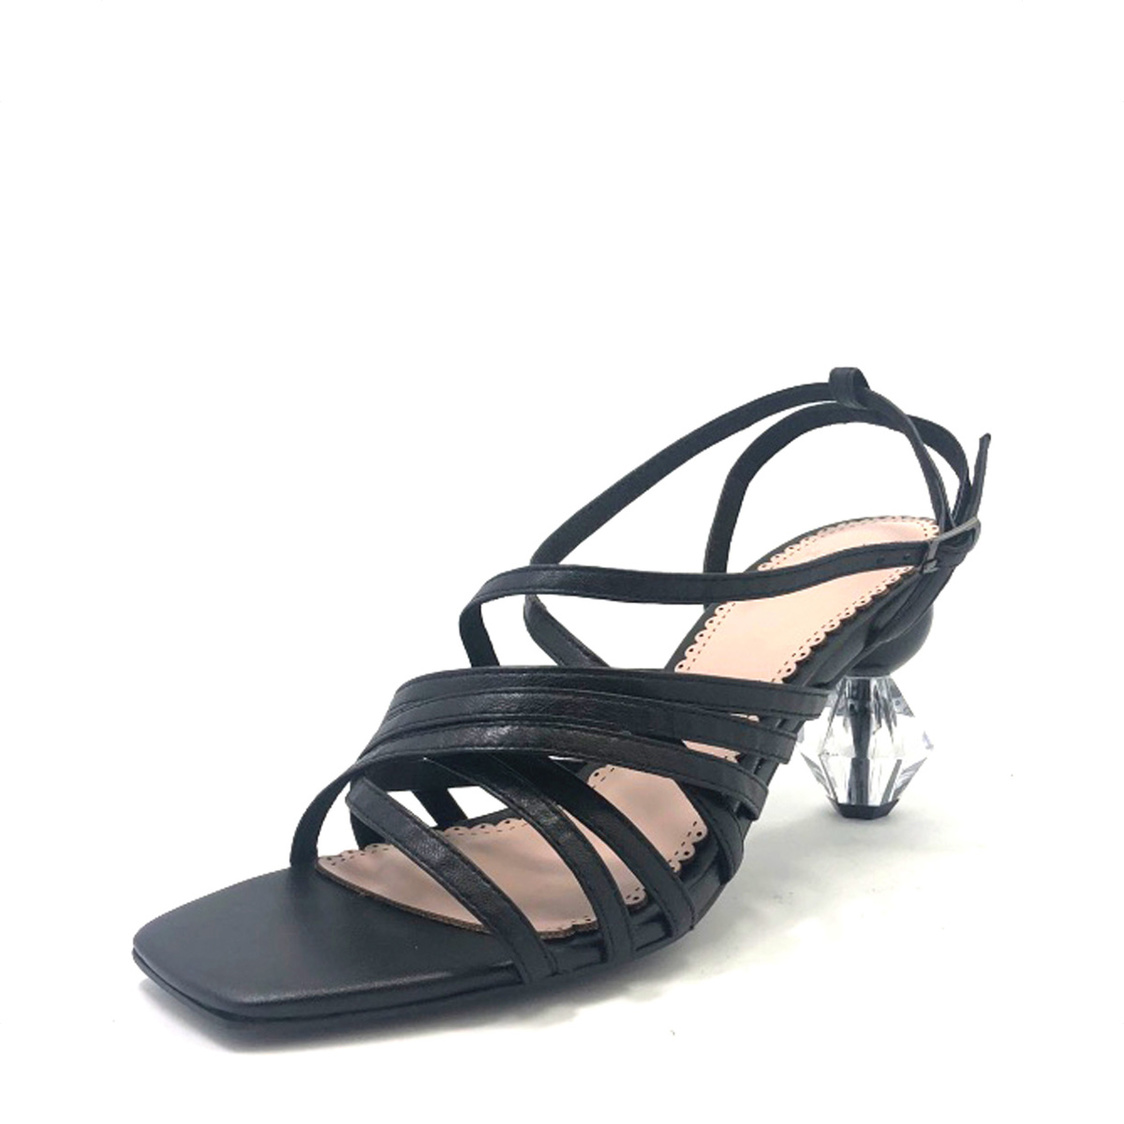 Strappy Sandals with Geometric Heel Black